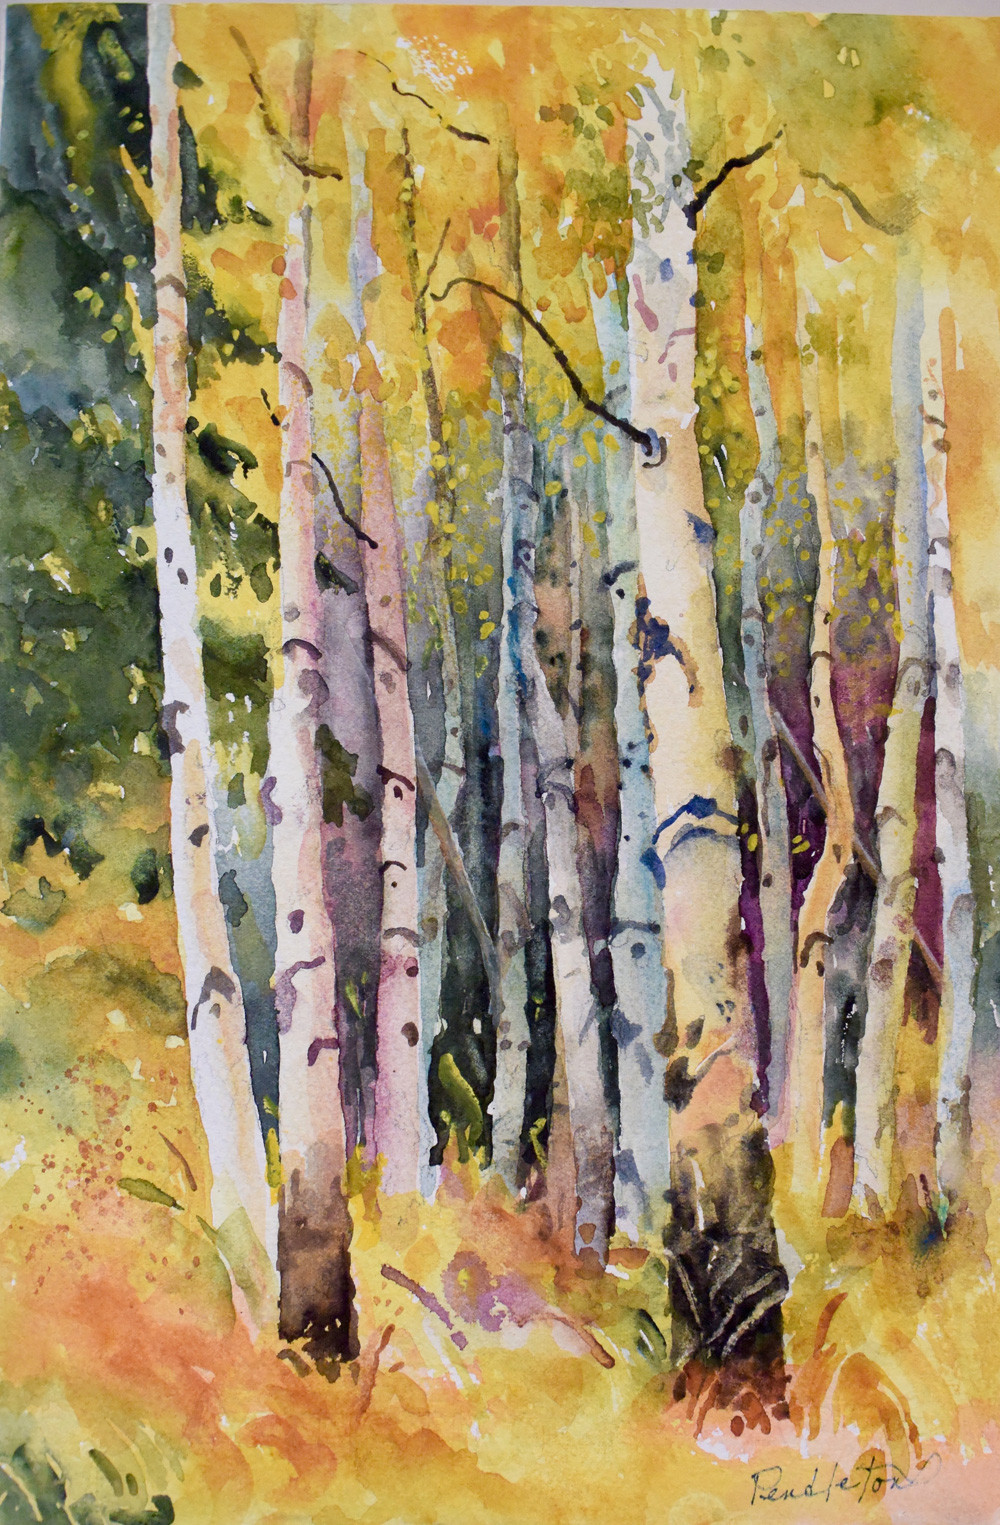 Steamboat Springs Watercolor Painting by Dennis Pendleton